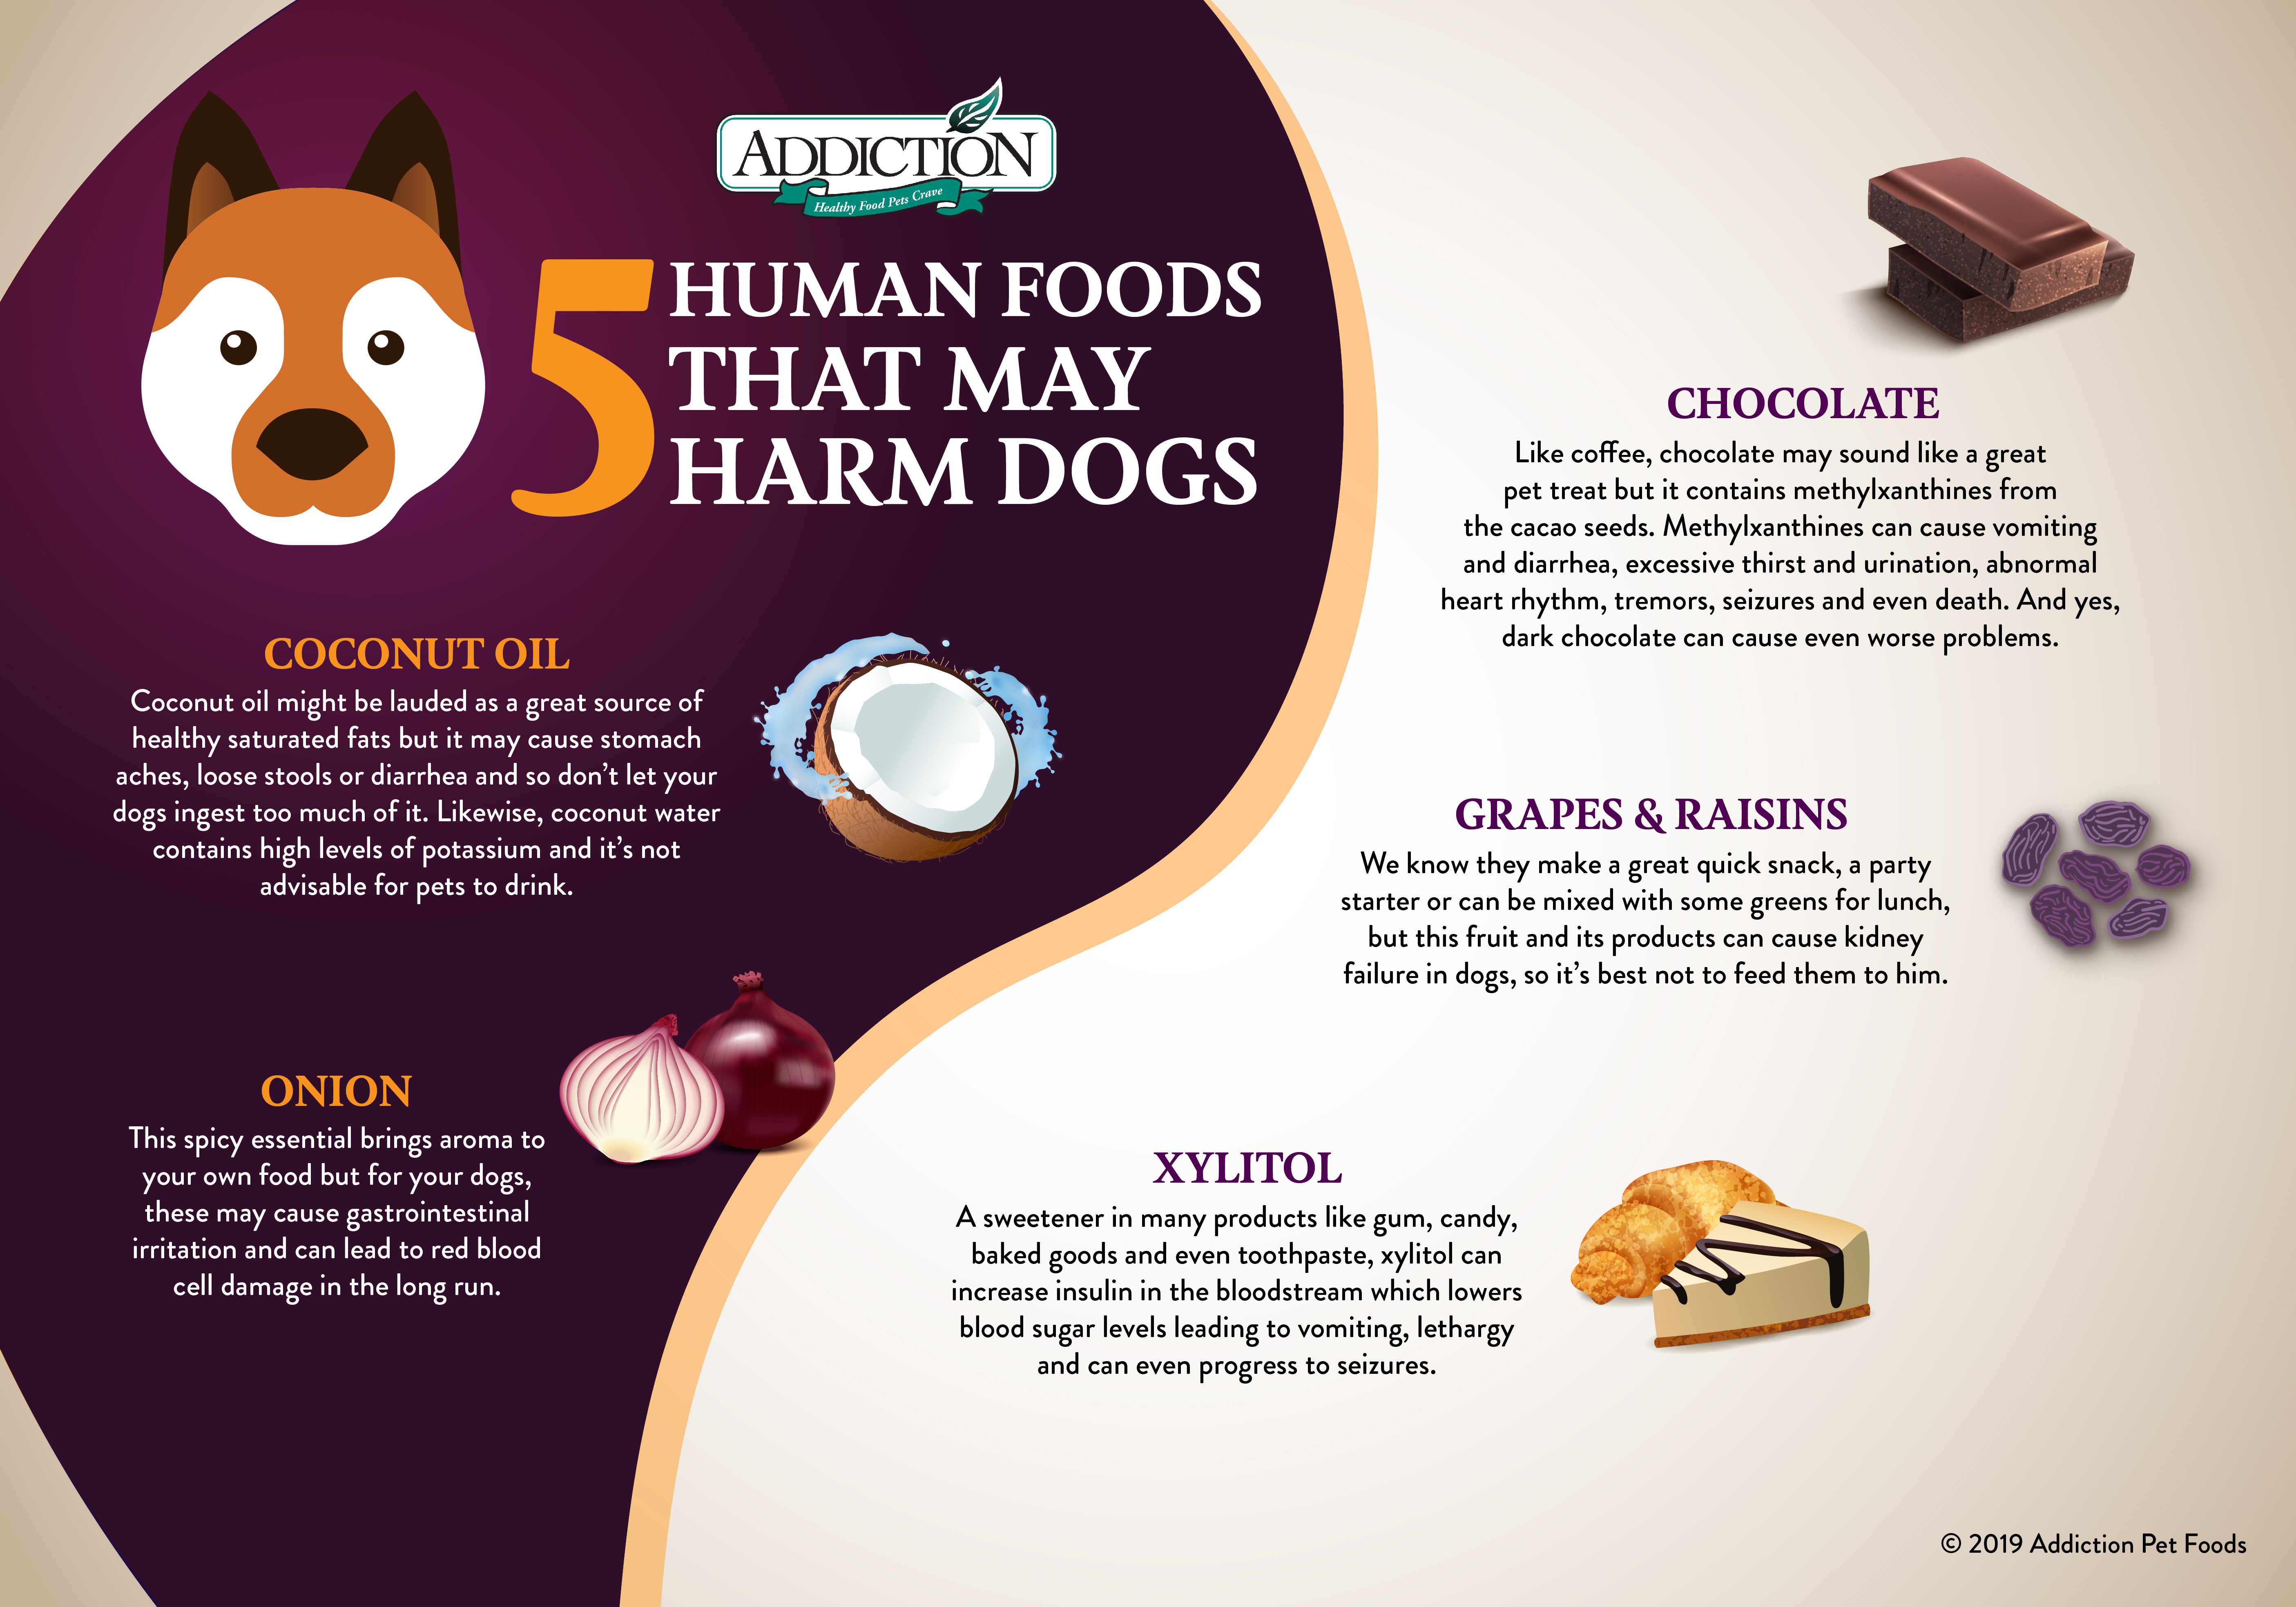 5 Human Foods That May Harm Dogs Addiction Foods